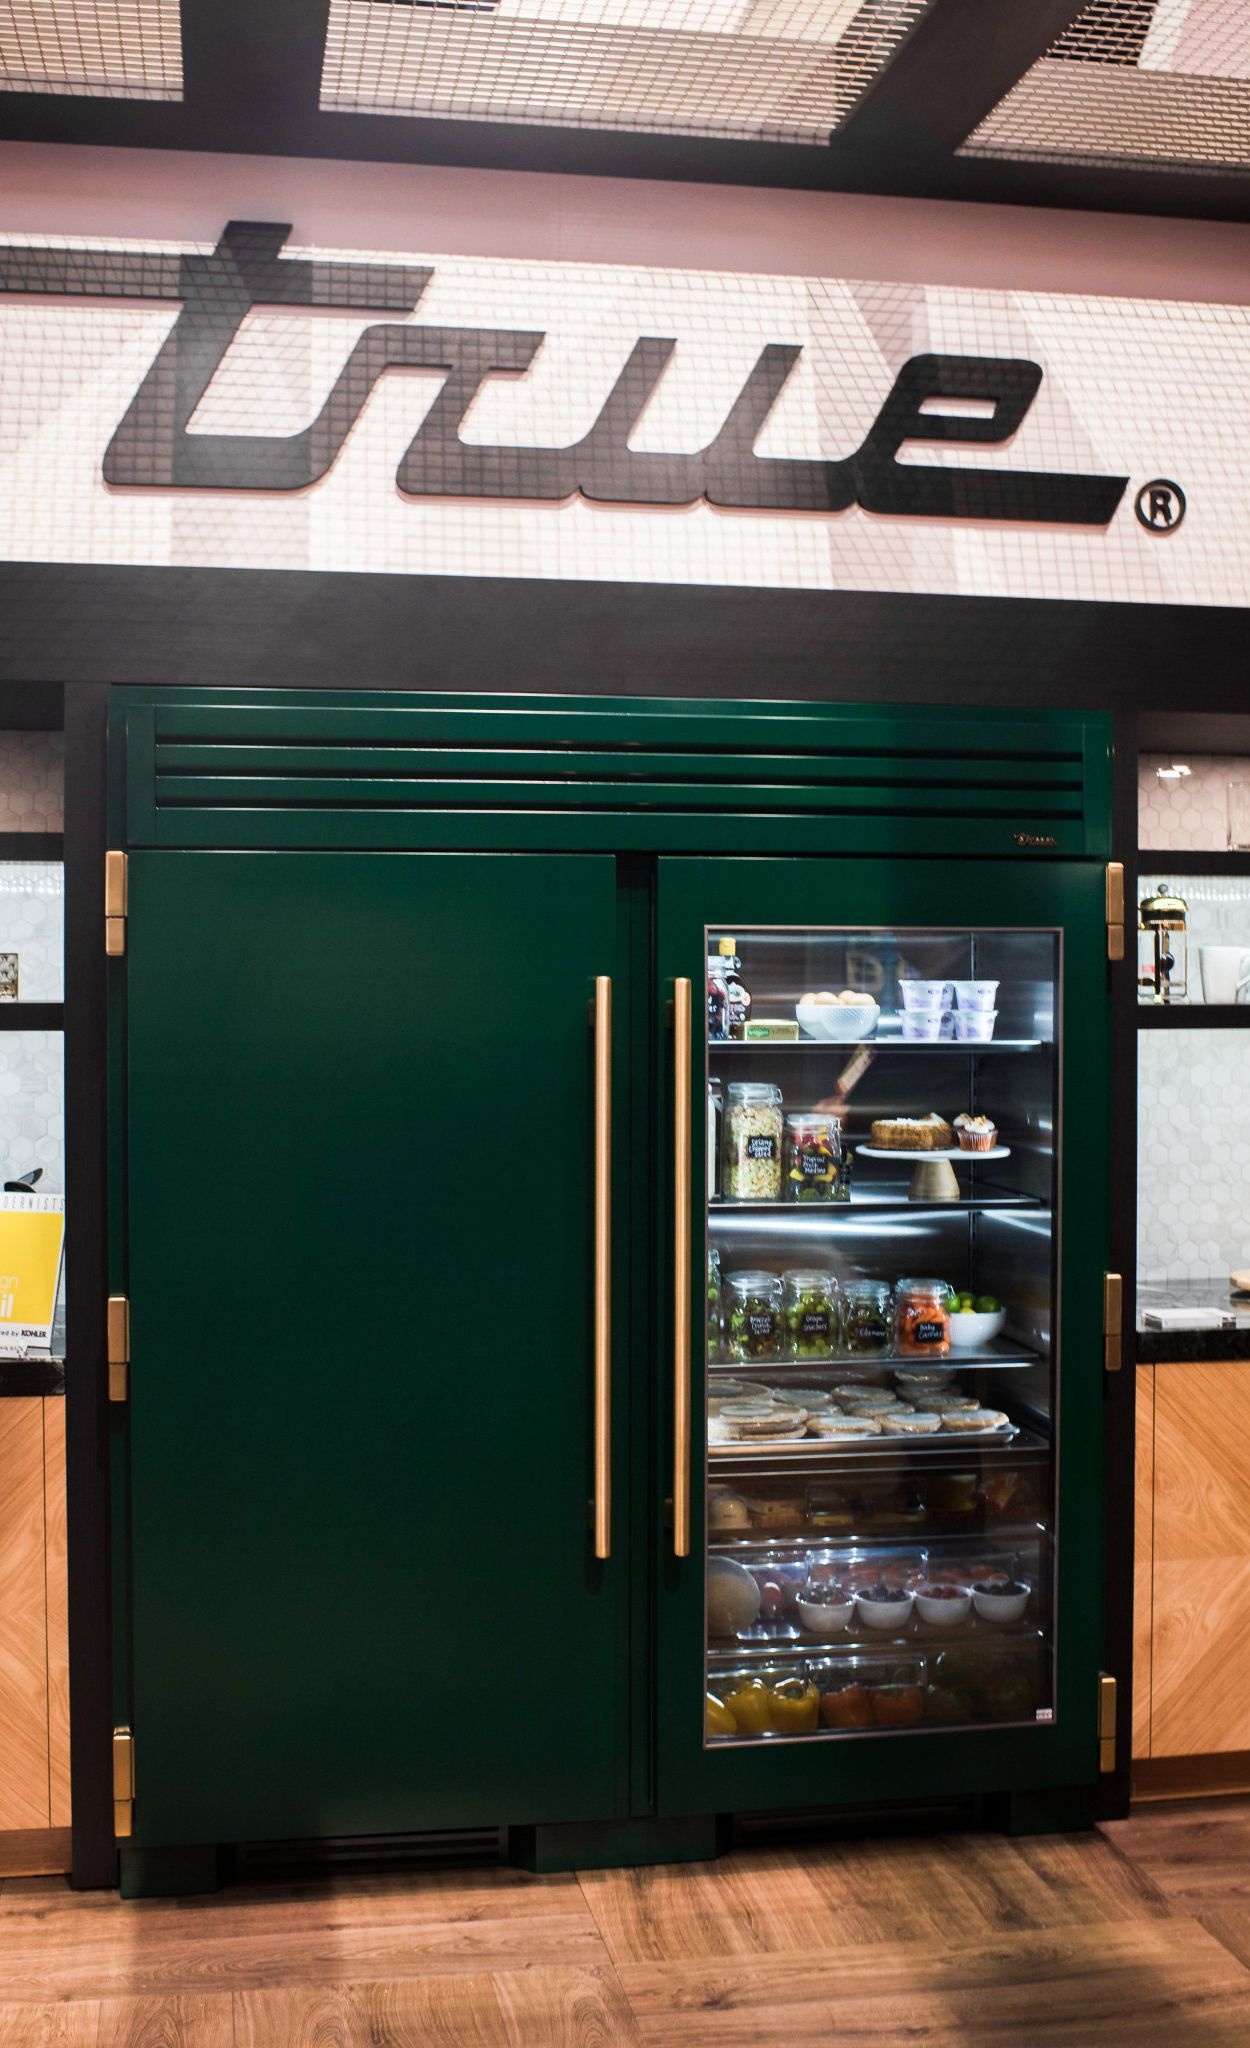 A commercial-grade refrigerator in emerald green adds luxury and personalization to home kitchens.